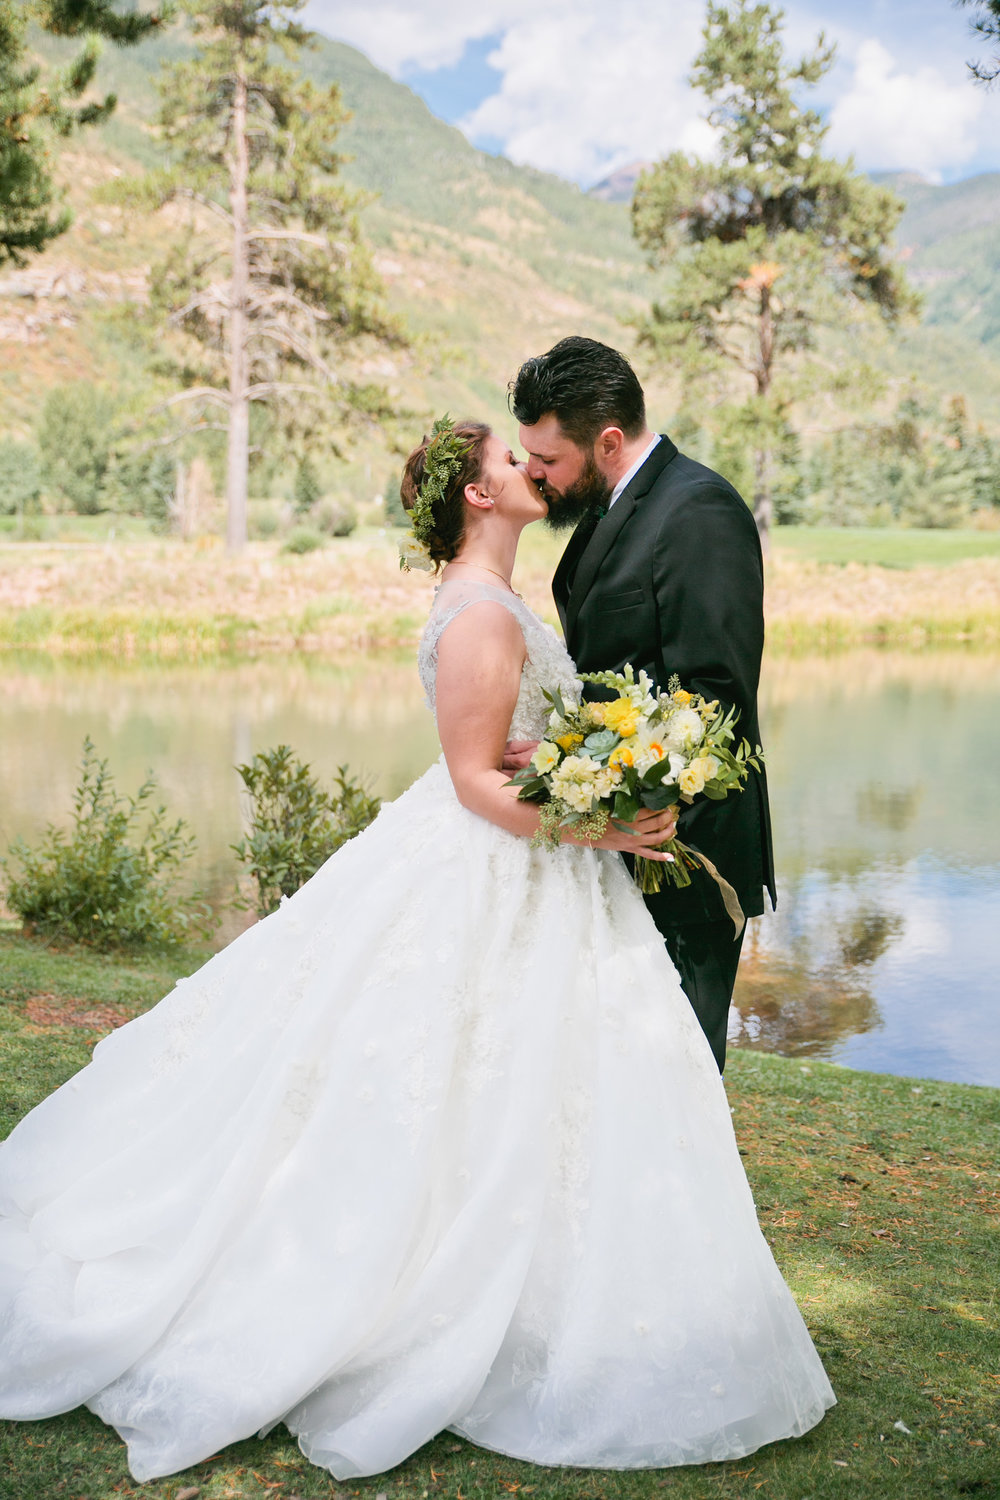 bride and groom kissing in front of mountains in Vail, Colorado during summer wedding